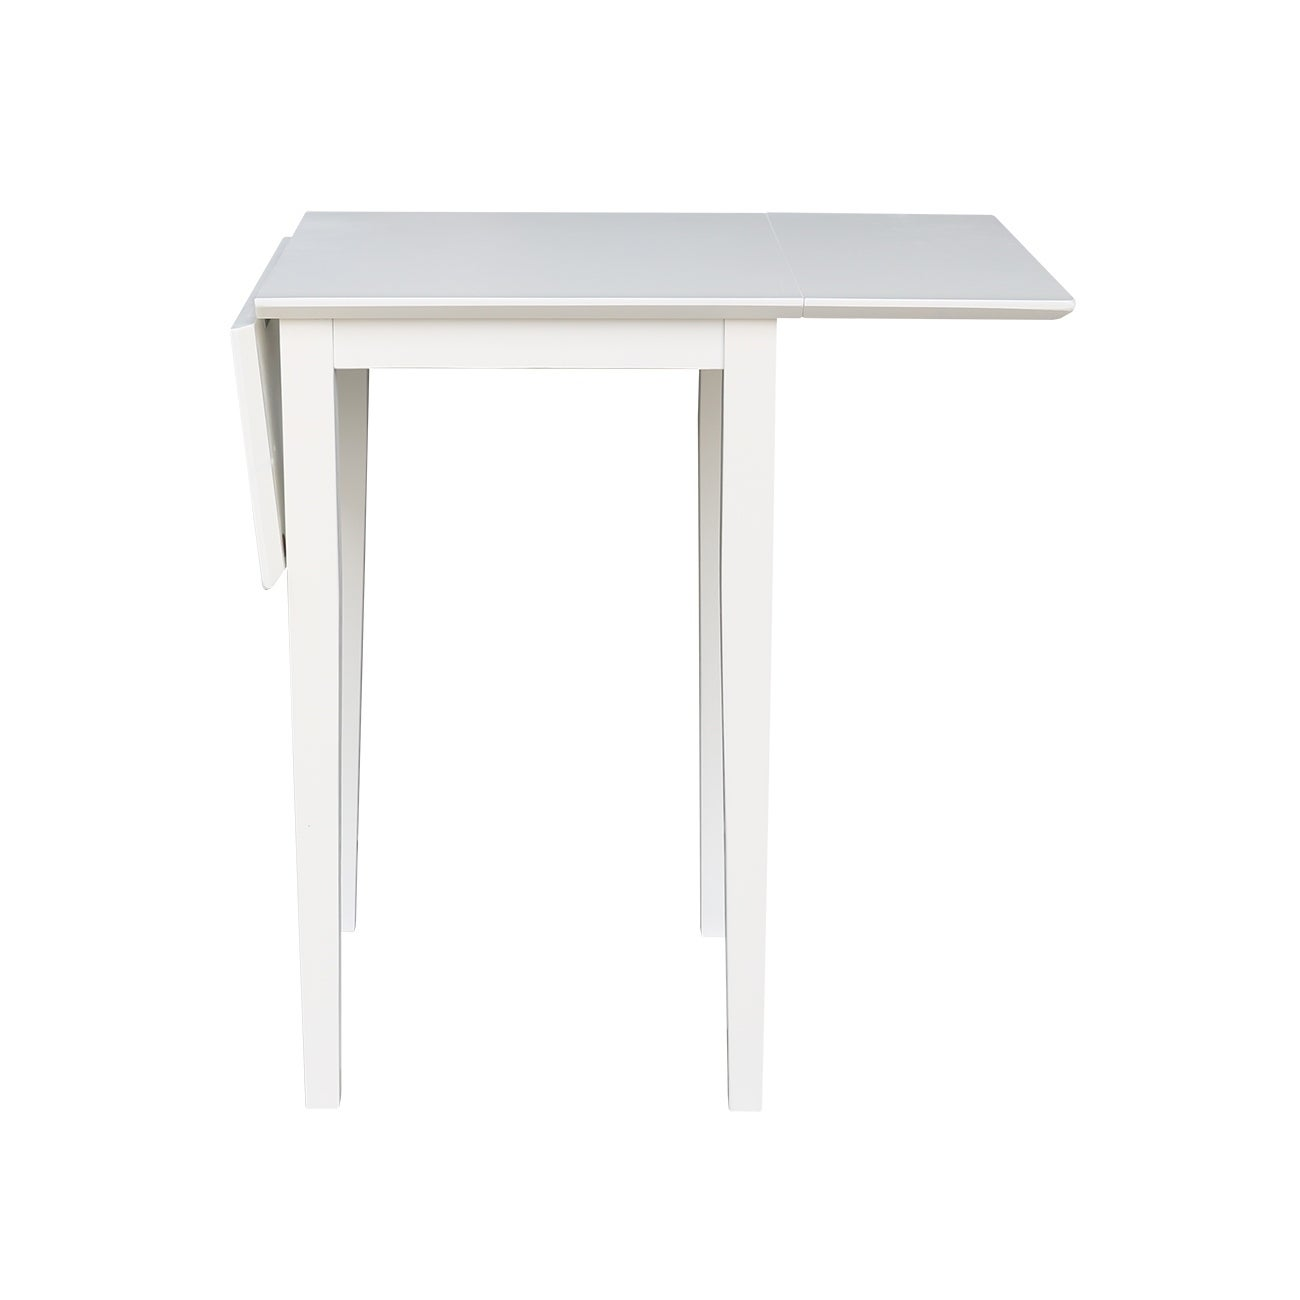 Admirable Porch Den Mandel White Small Dropleaf Table Cjindustries Chair Design For Home Cjindustriesco